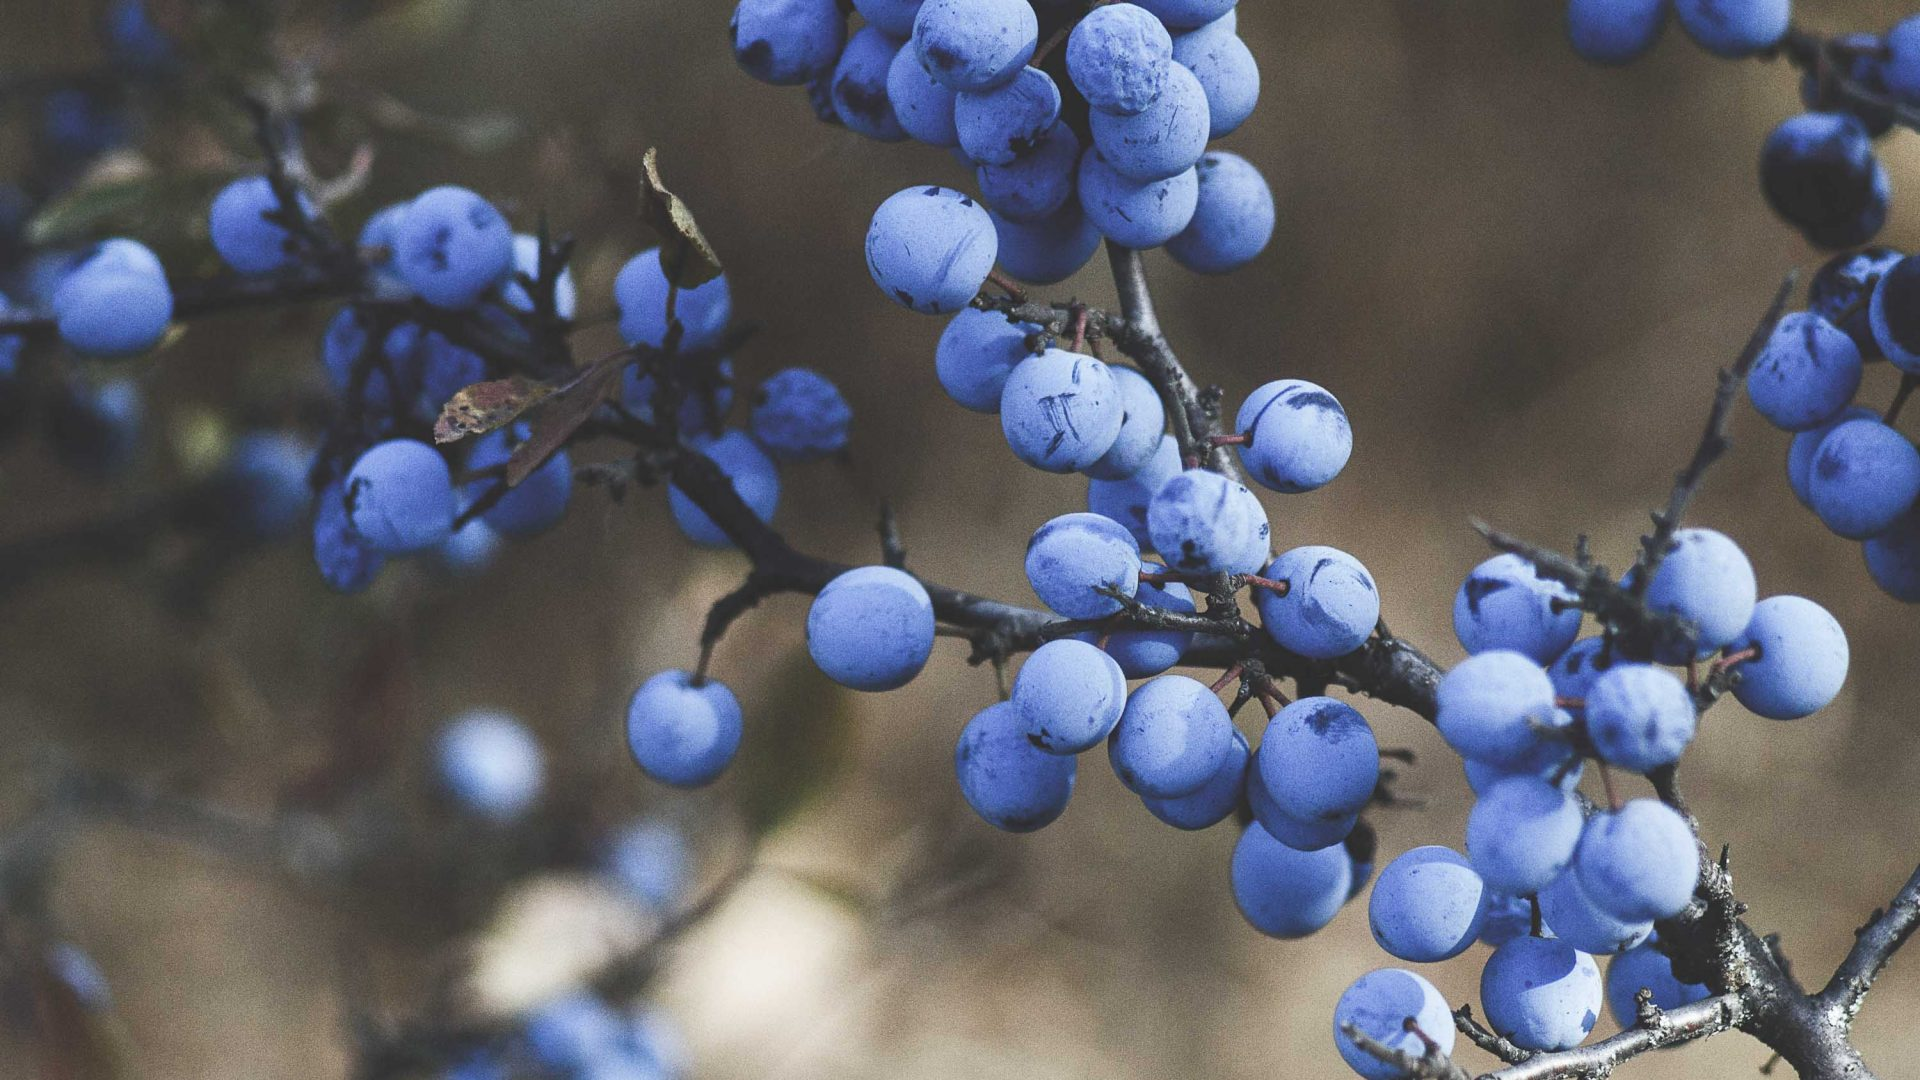 Blueberries growing in a food forest.